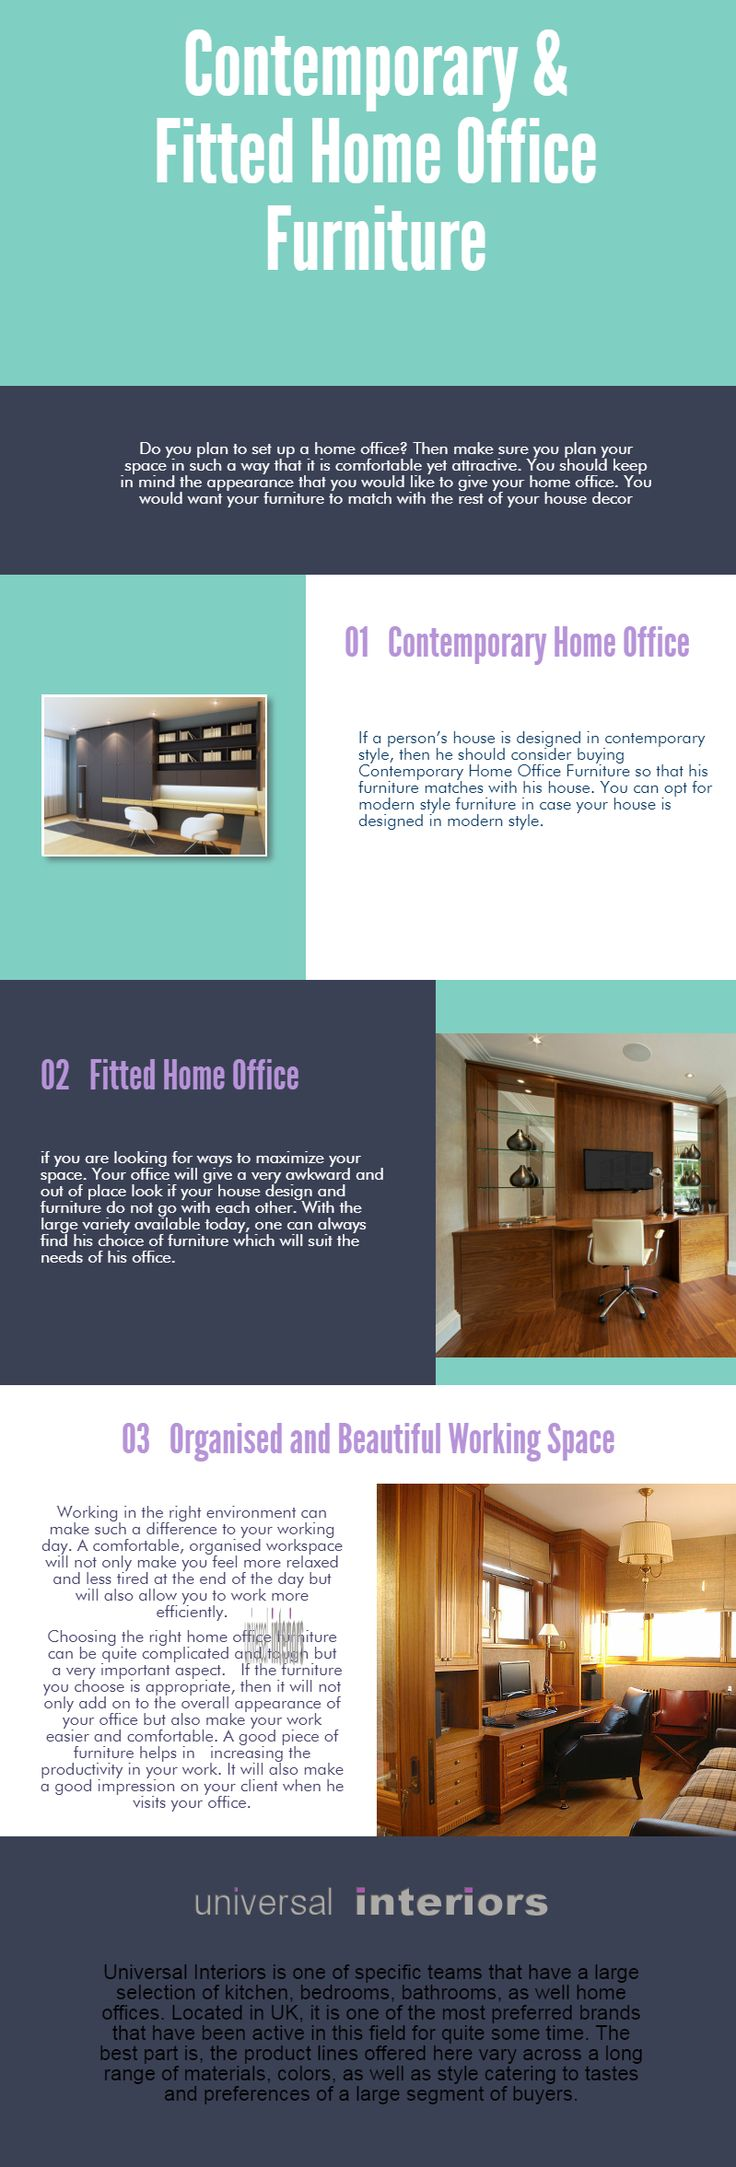 buy home office furniture give. Universal Interiors Arrange A Separate Sober Designer Fitted Home Office Furniture For You. We Are Highly Recommended Contemporary Furn\u2026 Buy Give